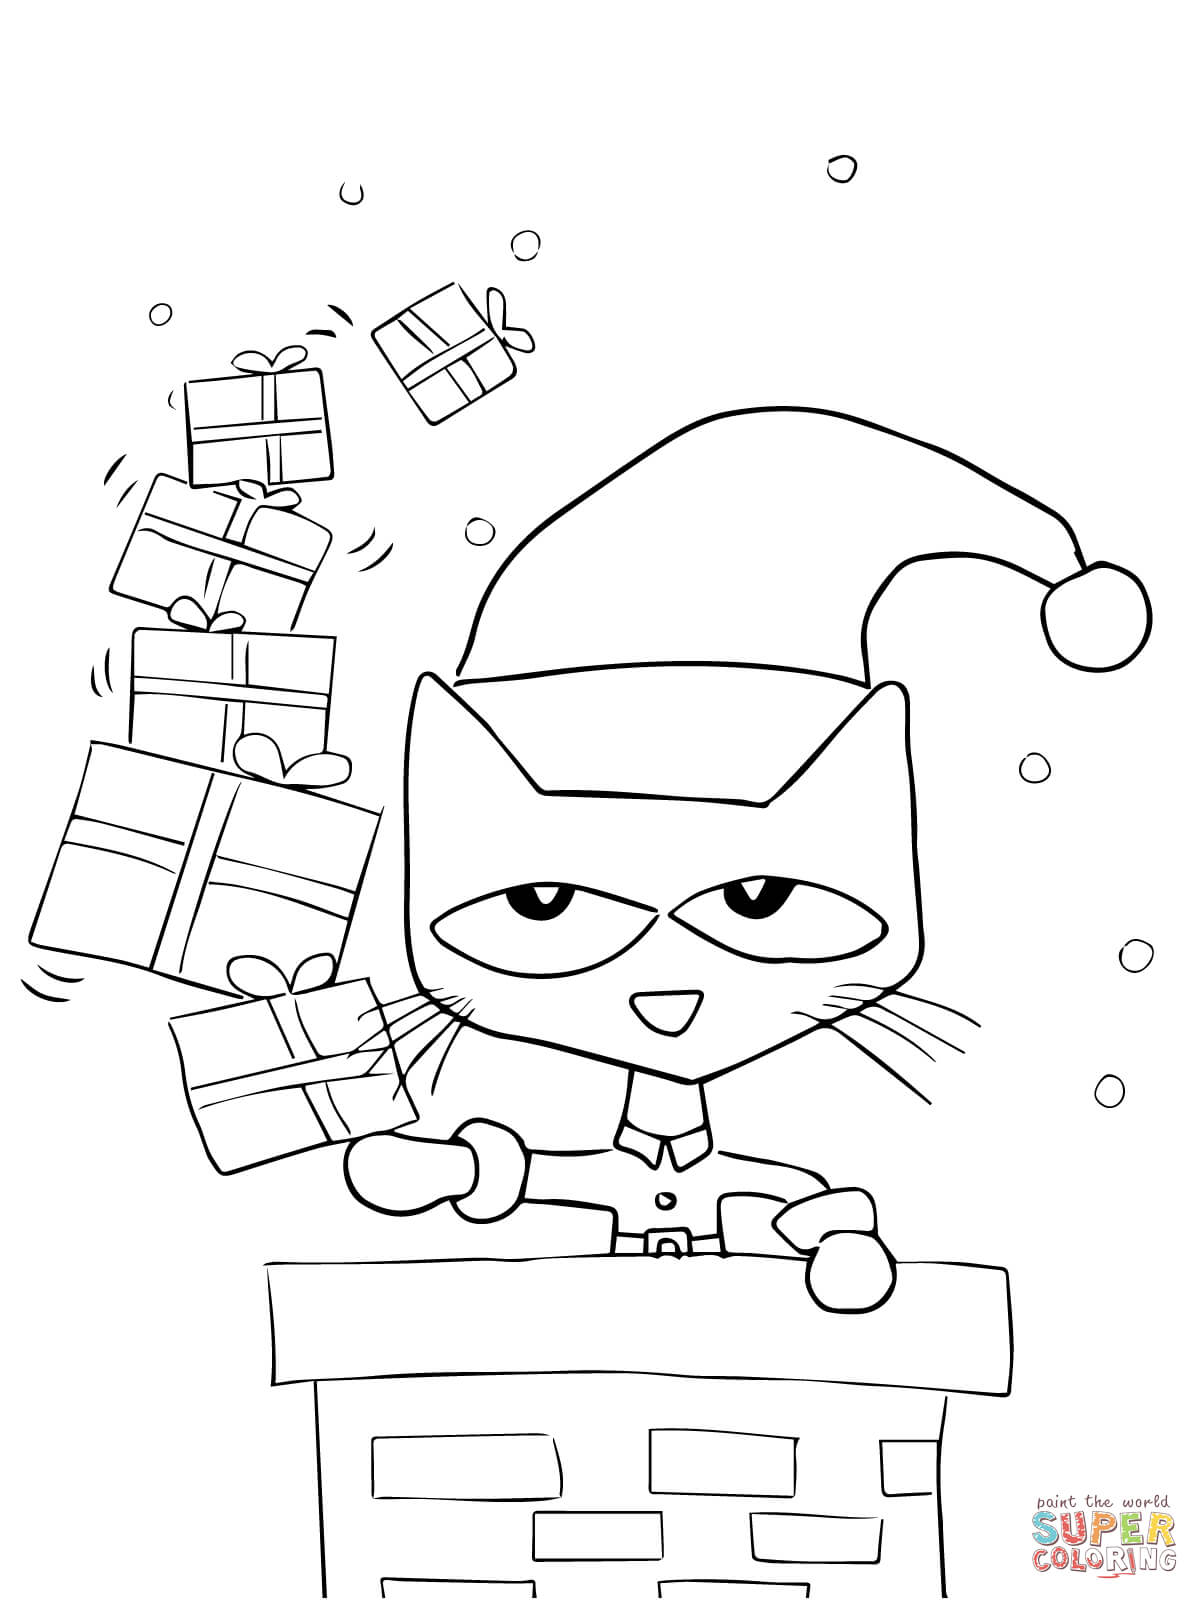 Pete The Cat Coloring Pages : coloring, pages, Coloring, Pages